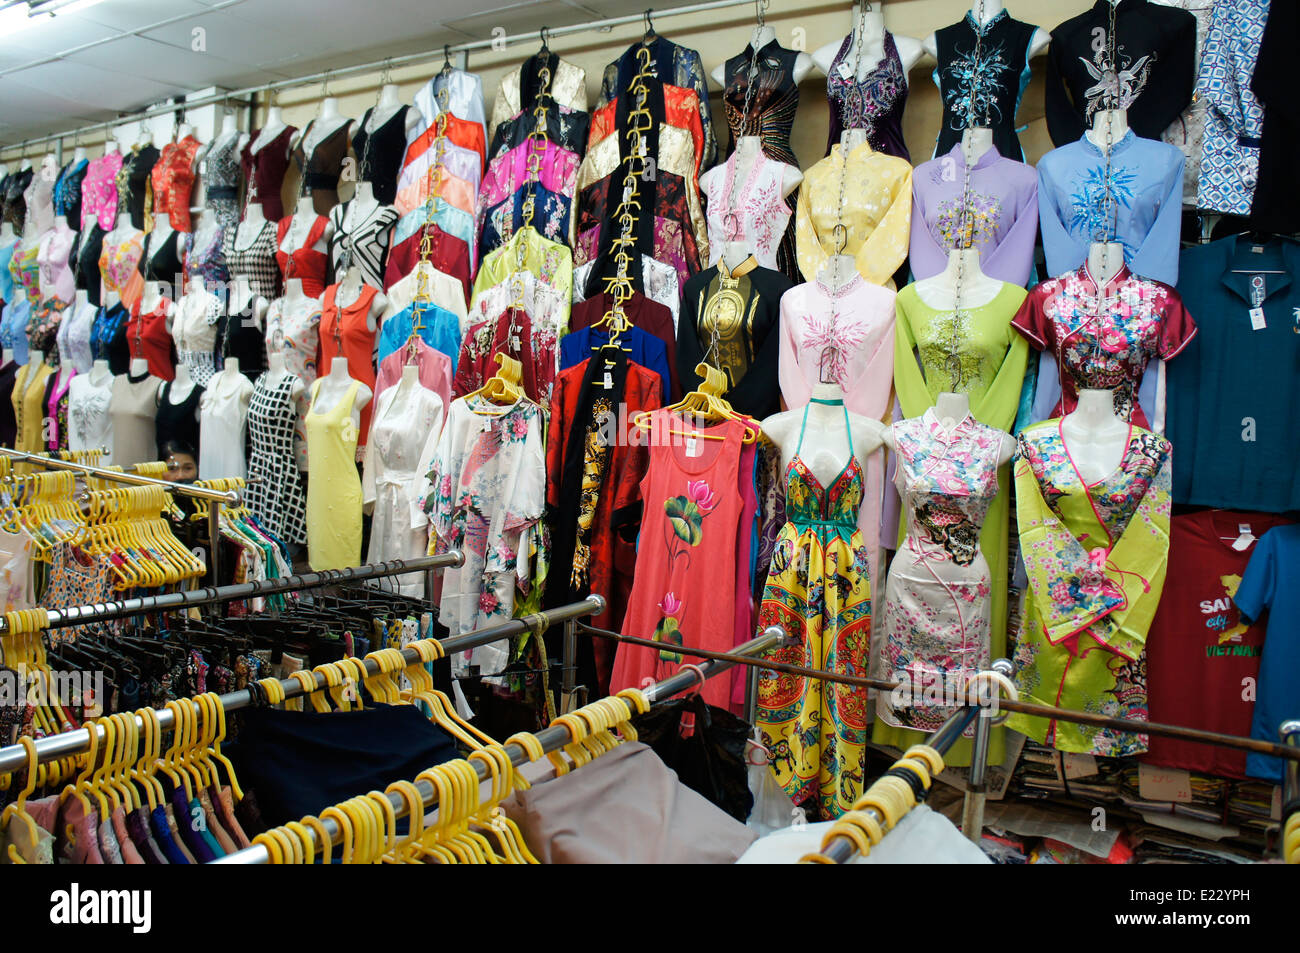 Vietnam shopping online clothes